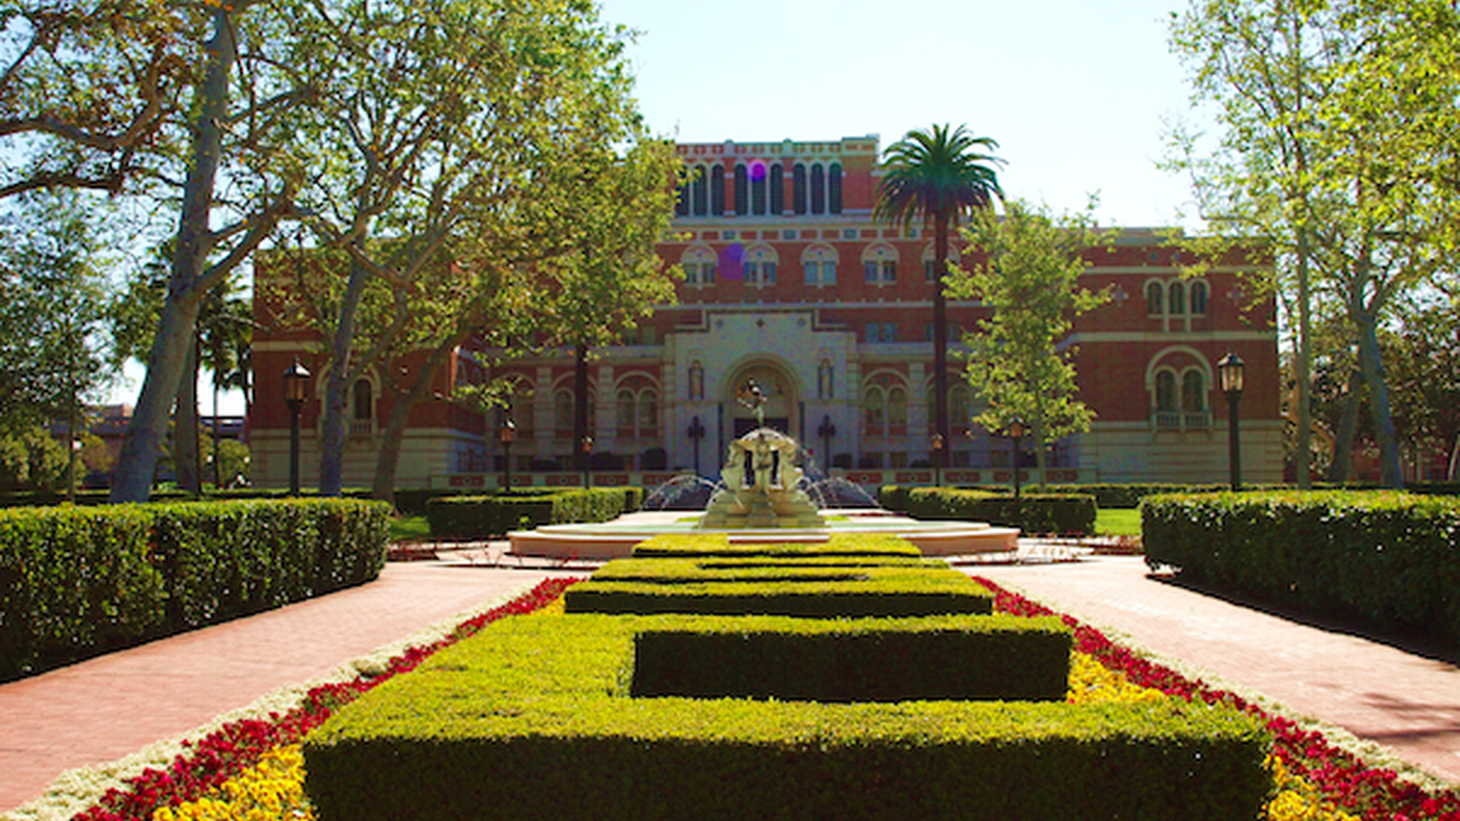 C. L. Max Nikias is out as USC's president. The university has been embroiled in scandal after scandal, the latest over gynecologist George Tyndall, who was accused of sexually abusing students for decades.